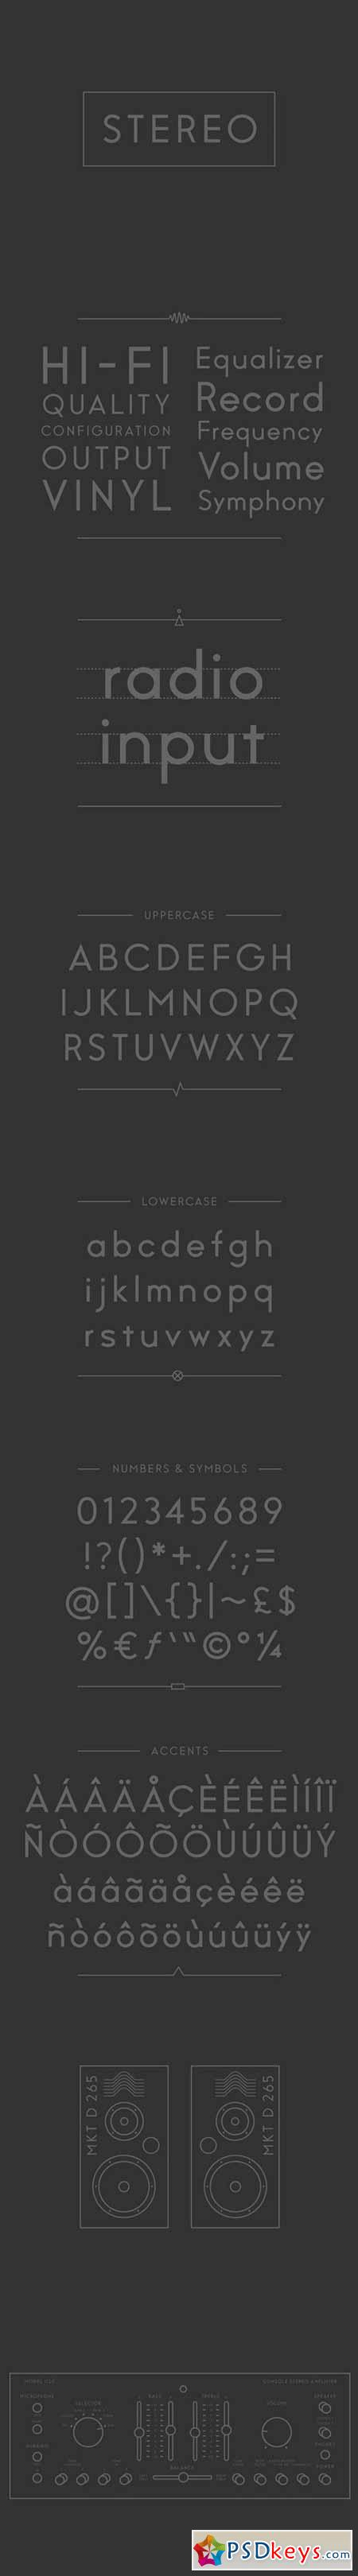 Stereo Font